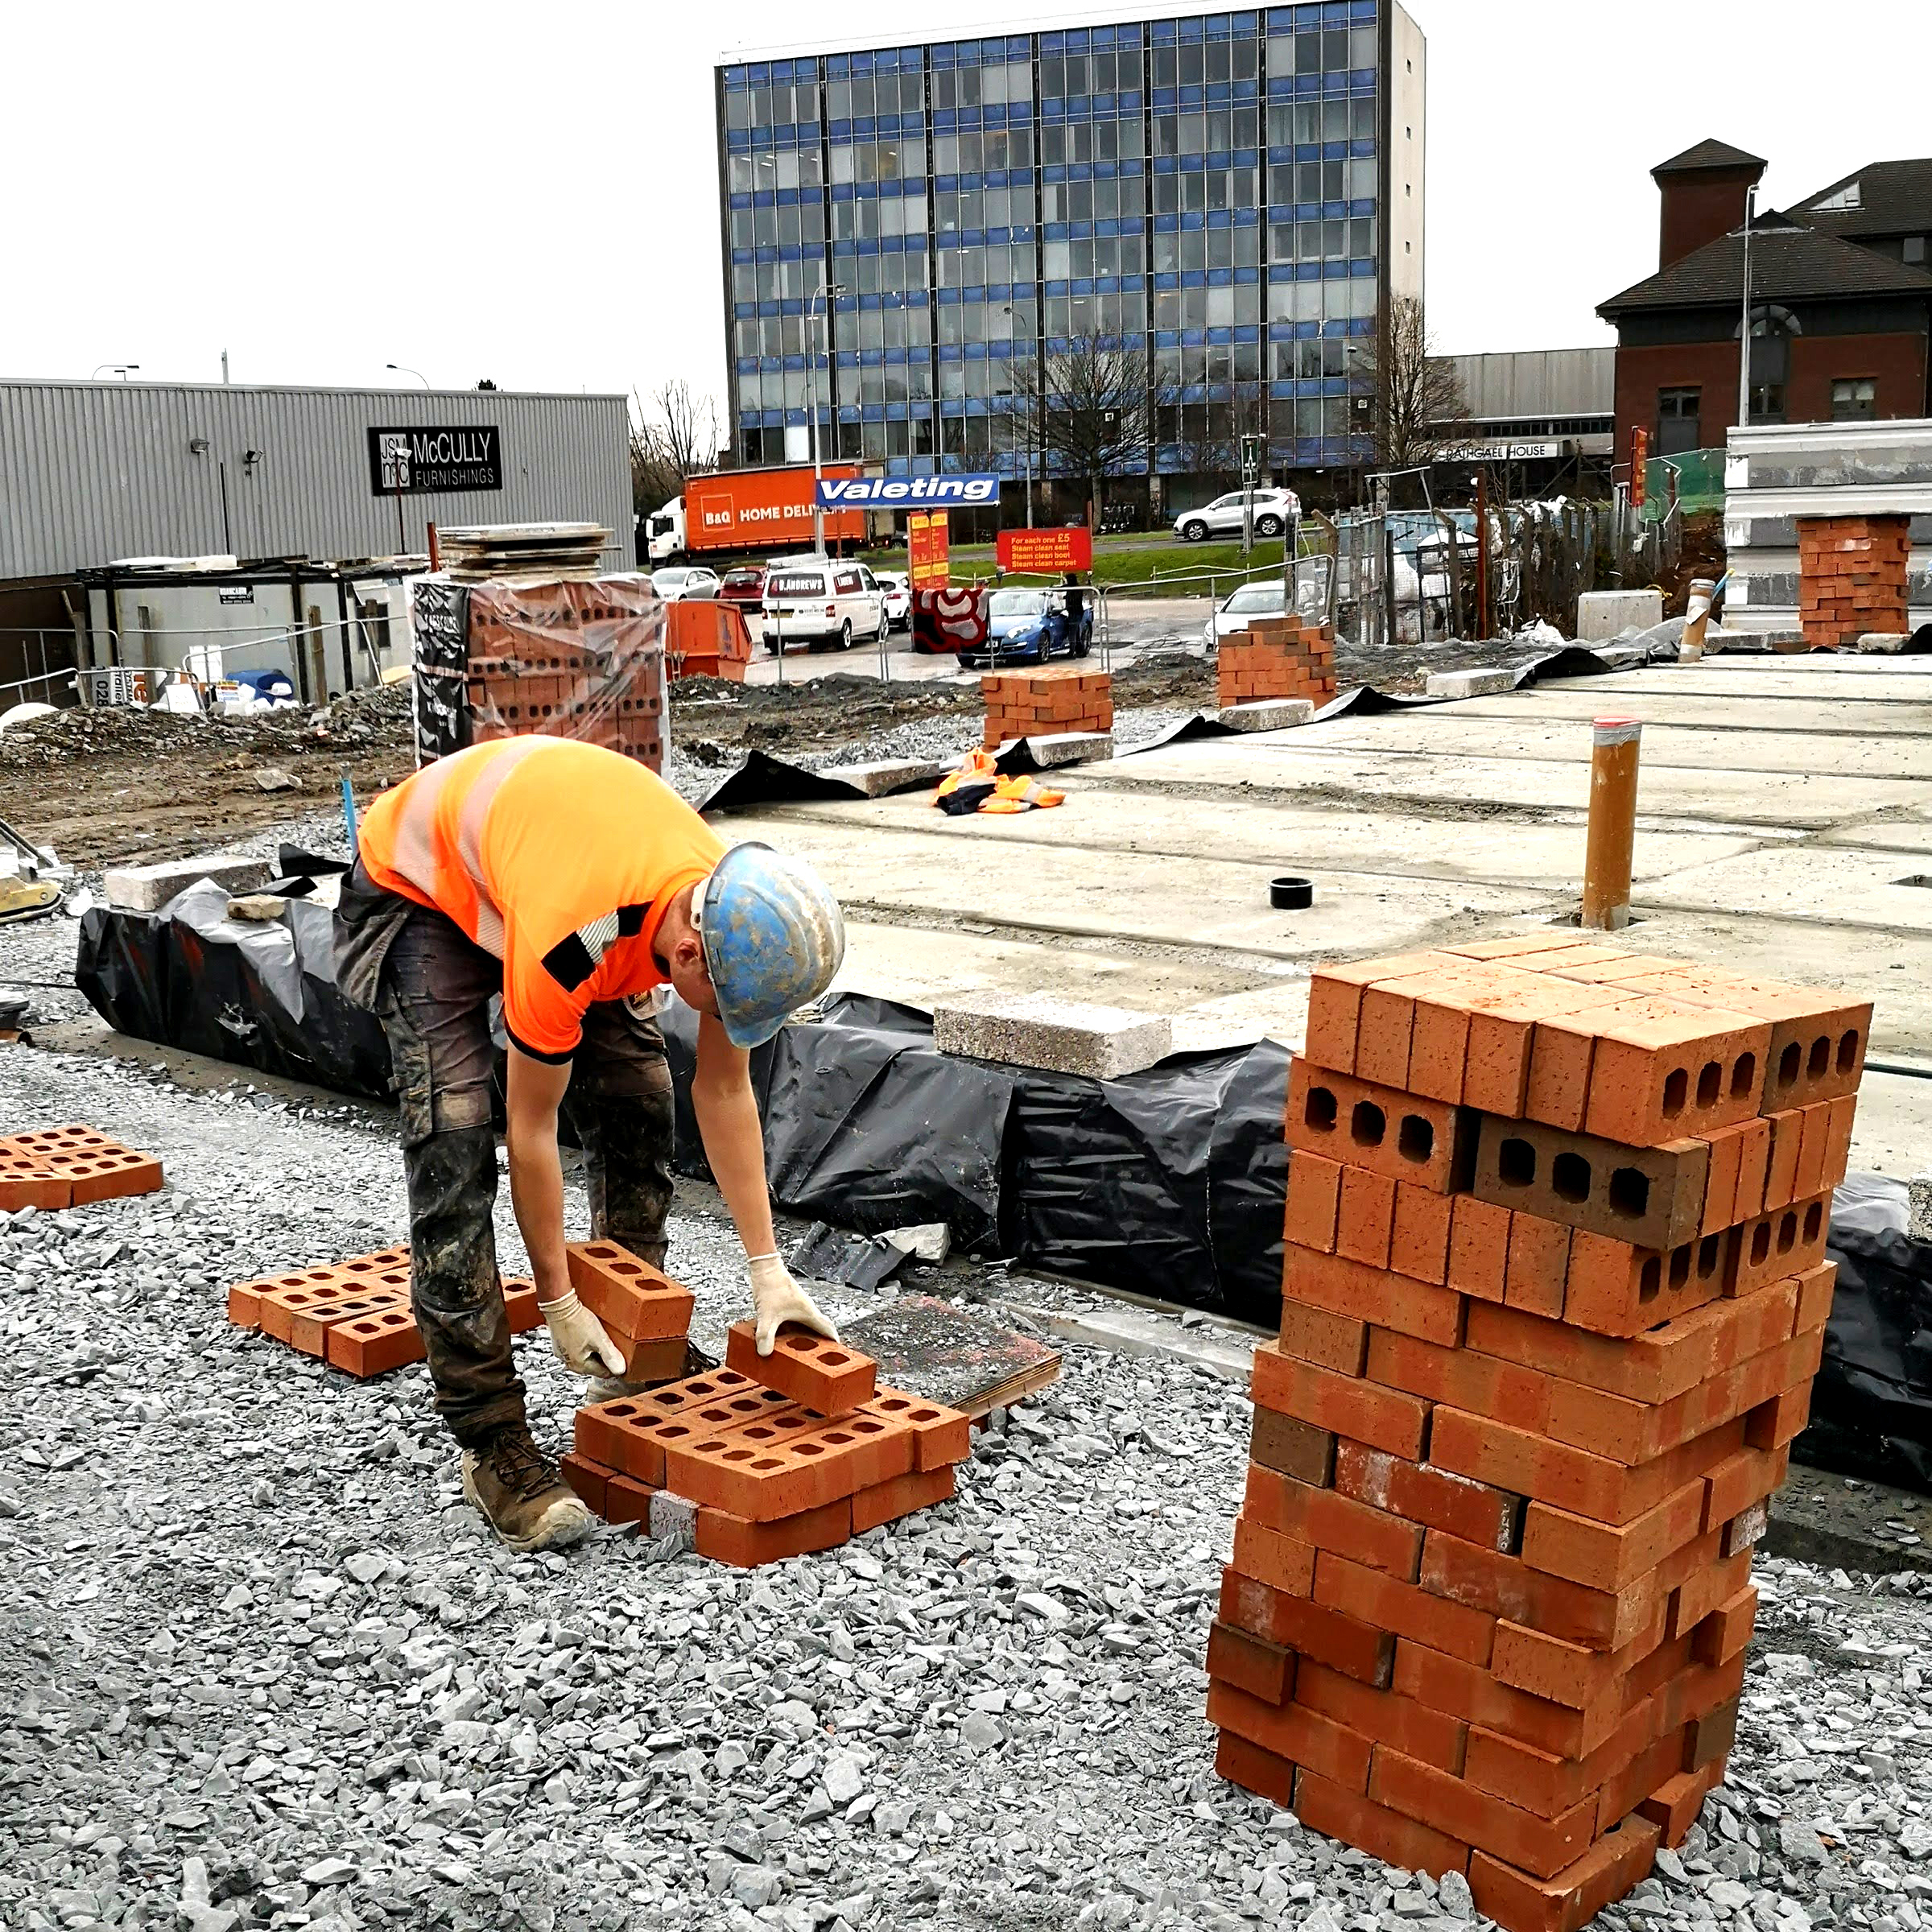 Bricklayer-–-Tyran-Glenny-applied-for-job.-MN-Bricklaying.jpg?mtime=20200206153645#asset:7326